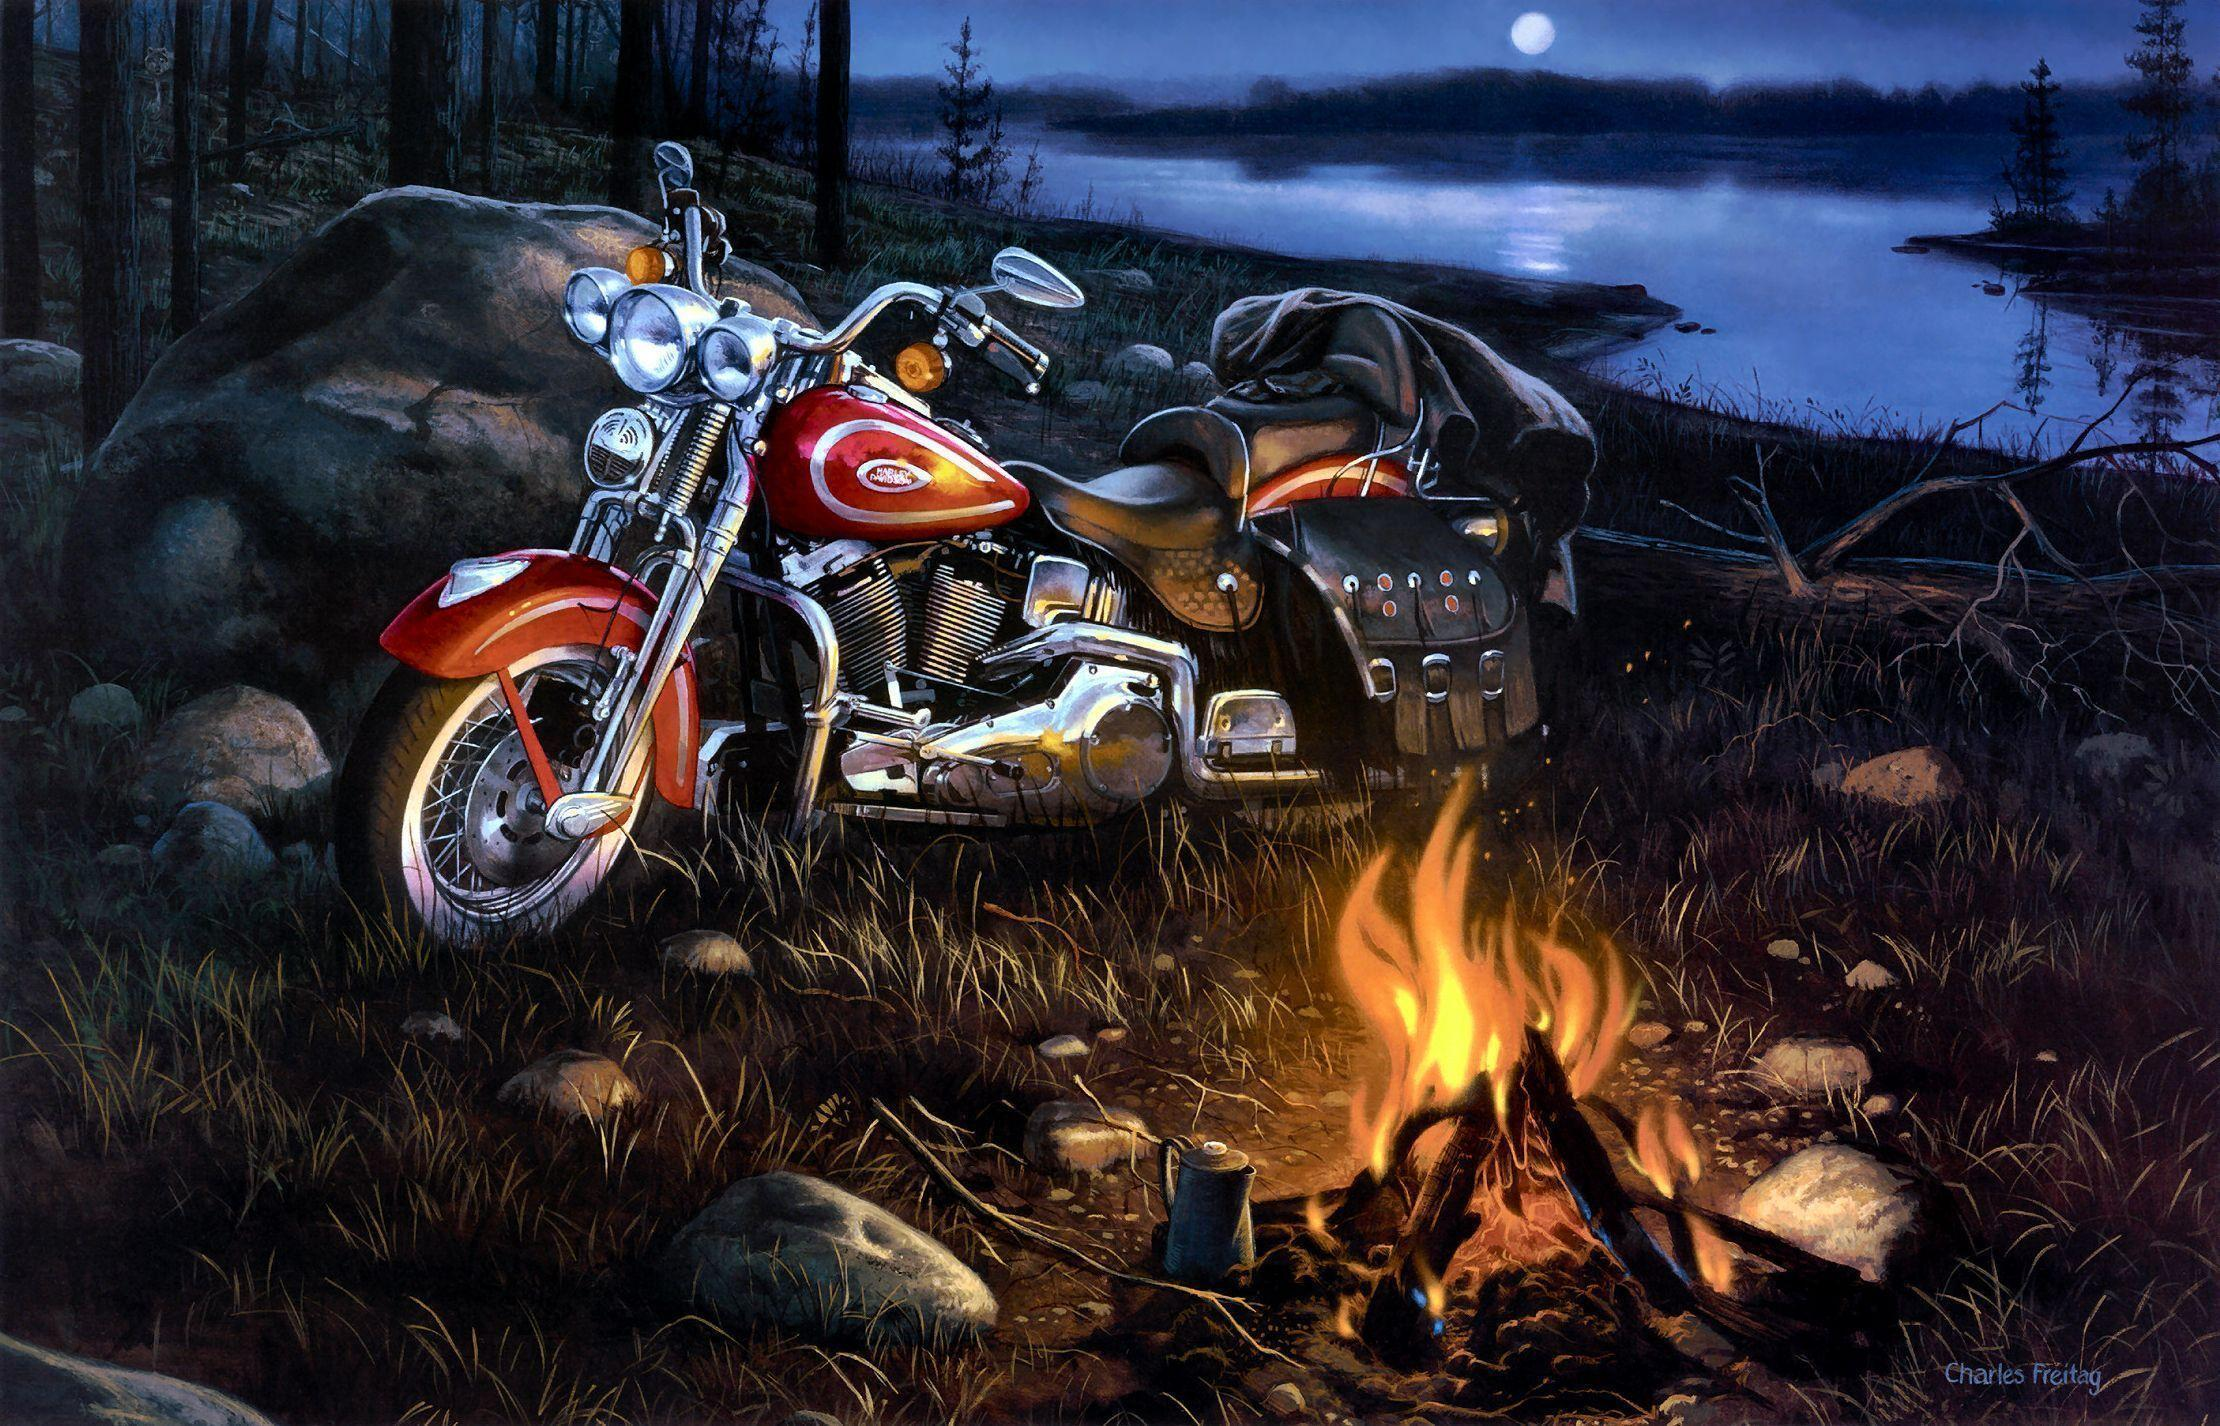 Harley Davidson Wallpapers 2220x1426